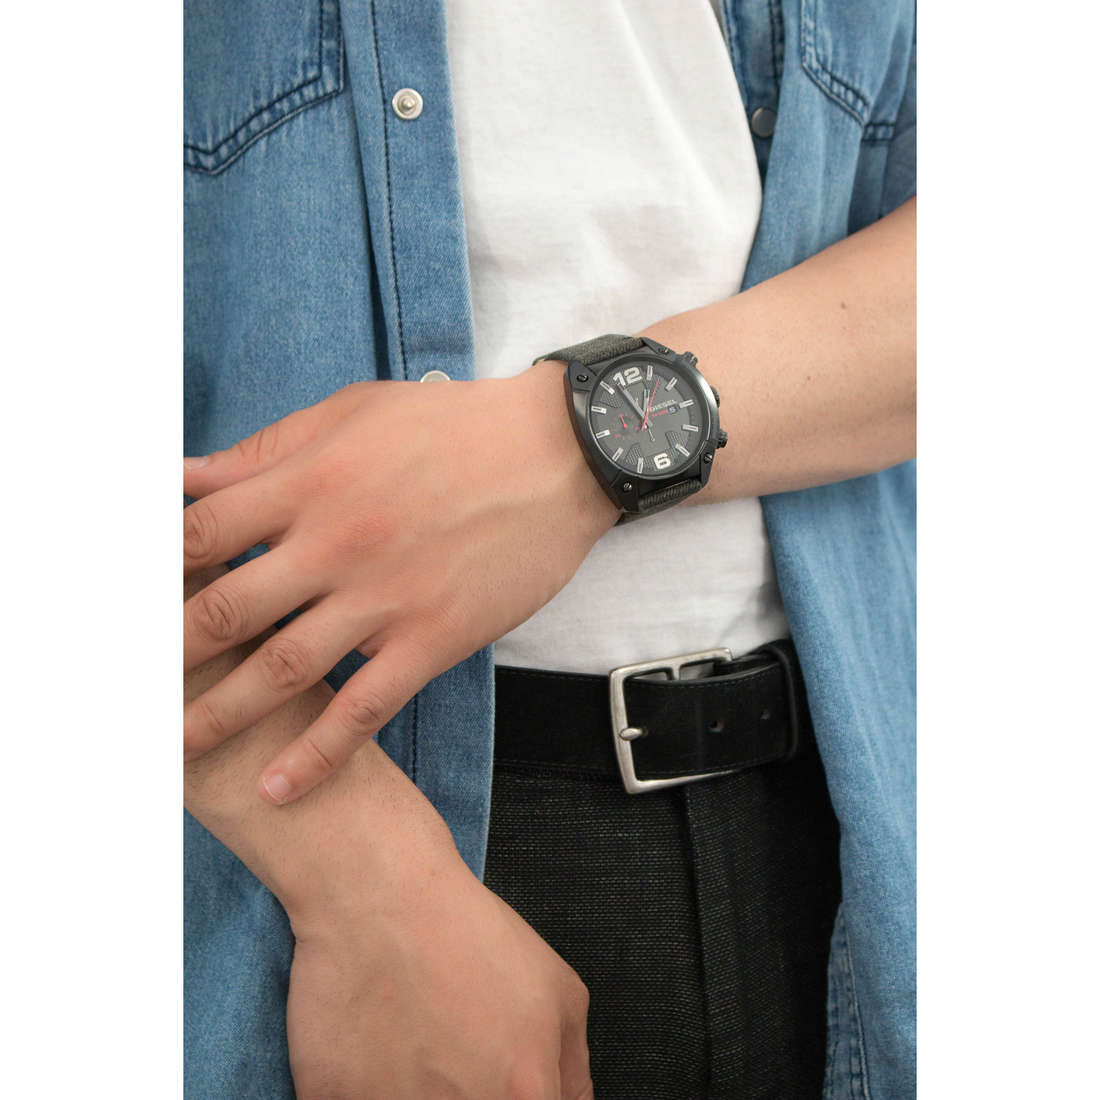 Diesel chronographes Overflow homme DZ4373 photo wearing